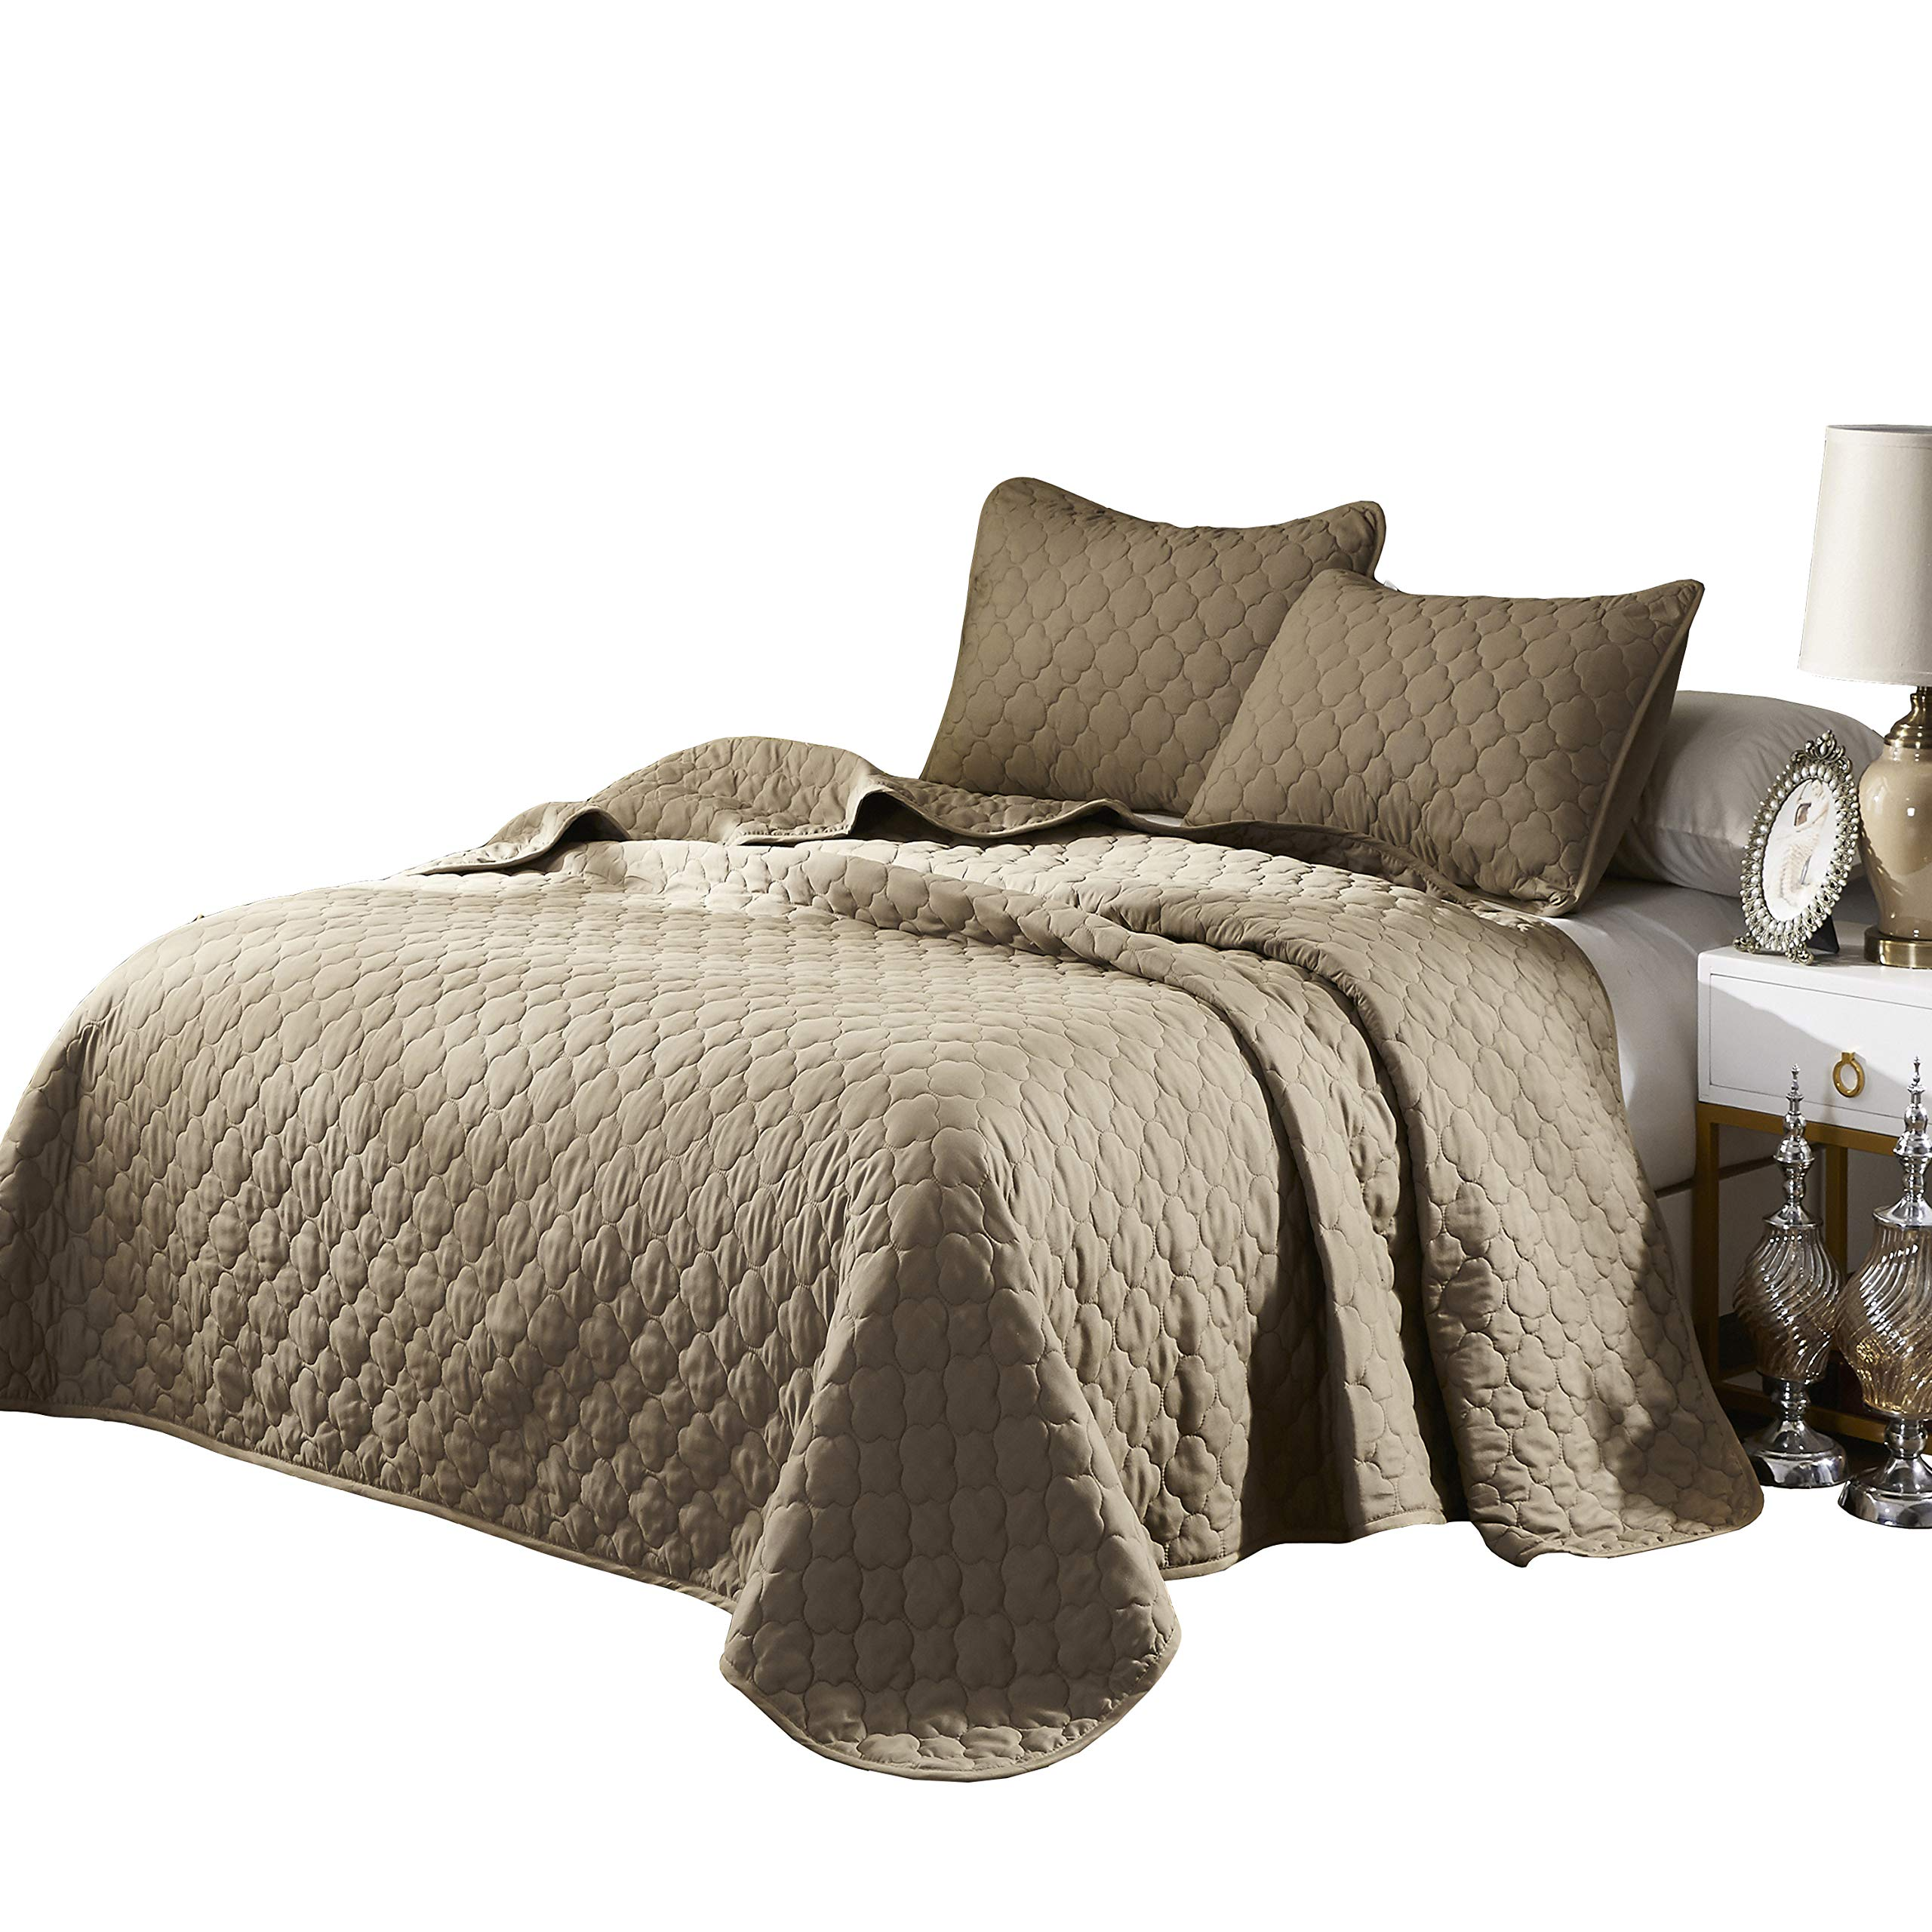 OVERSIZE QUEEN TAUPE SOLID COLOR QUILTED BEDSPREAD COVERLET (106''X100'') + 2 STANDARD SHAMS (20''X26'') HYPOALLERGENIC OVERFILLED BLANKET, 20'' FALL EACH SIDE -HOME, HOTEL/MOTEL, RENTALS- 6.28 LBS